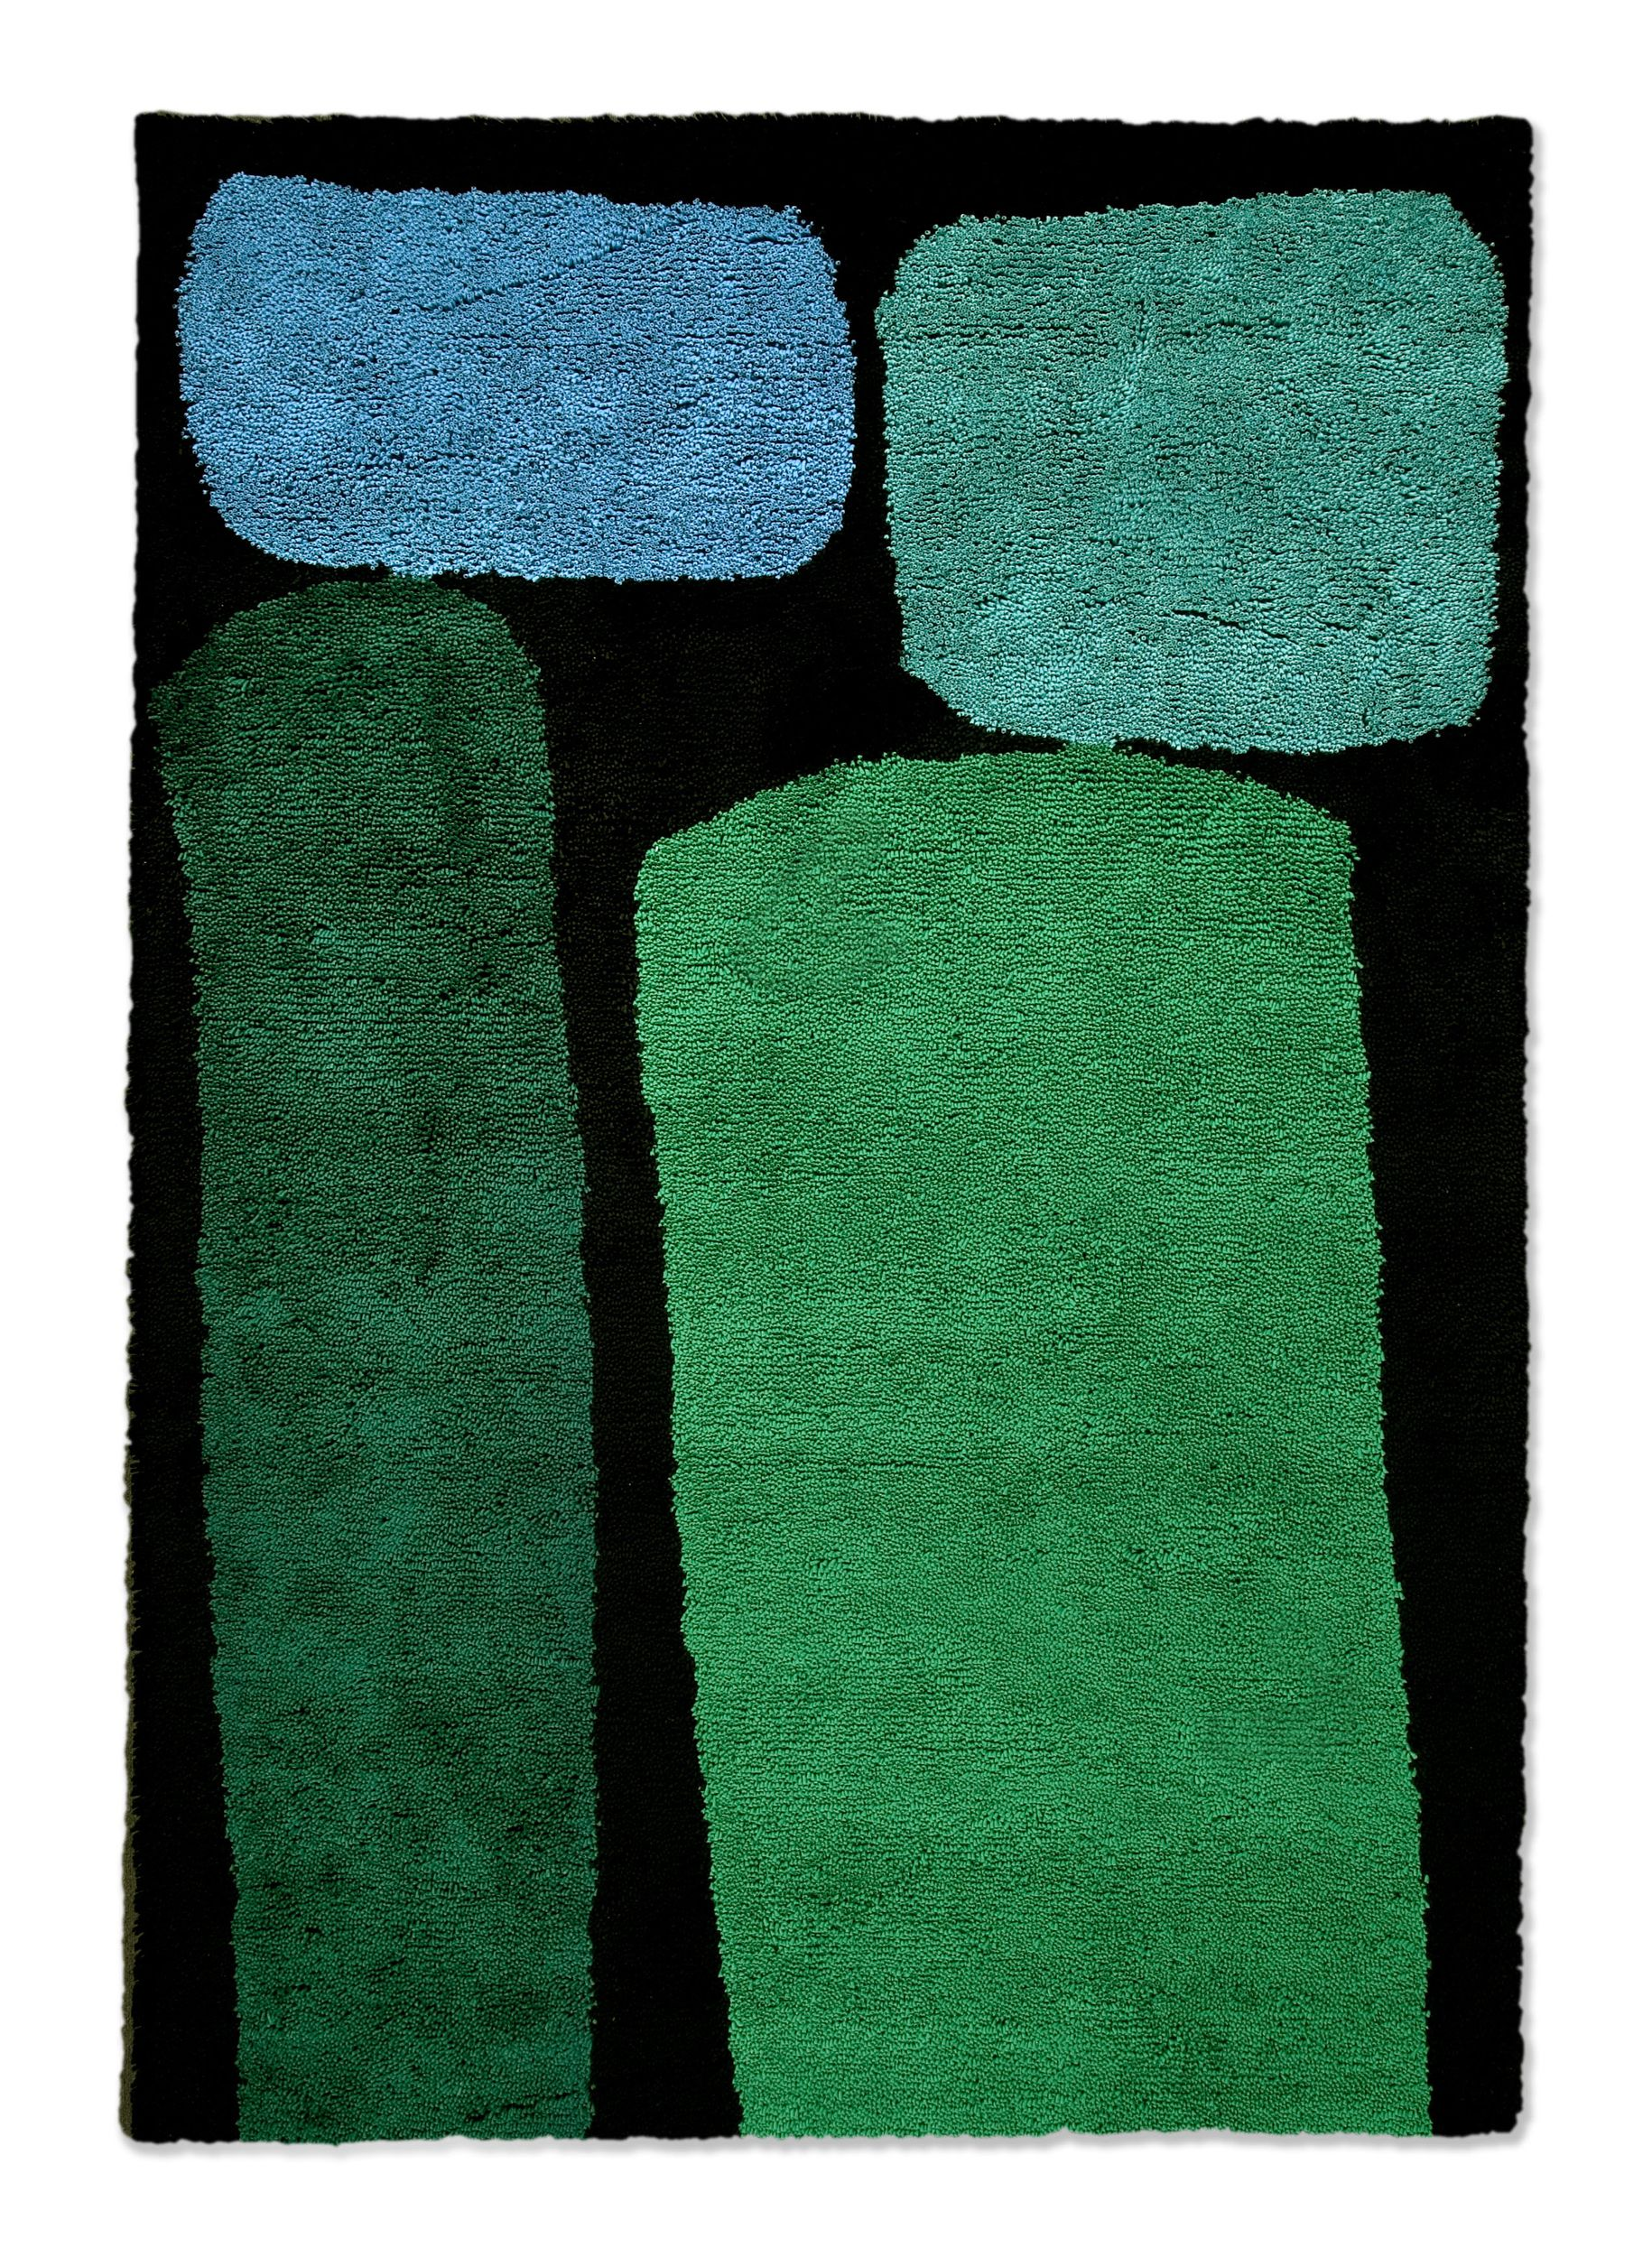 Designers Louise Olsen And Stephen Ormandy Have Created A Unique Studio Synonymous With Luxury Known Predominantly Fo Rug Design Dinosaur Design Handmade Rugs